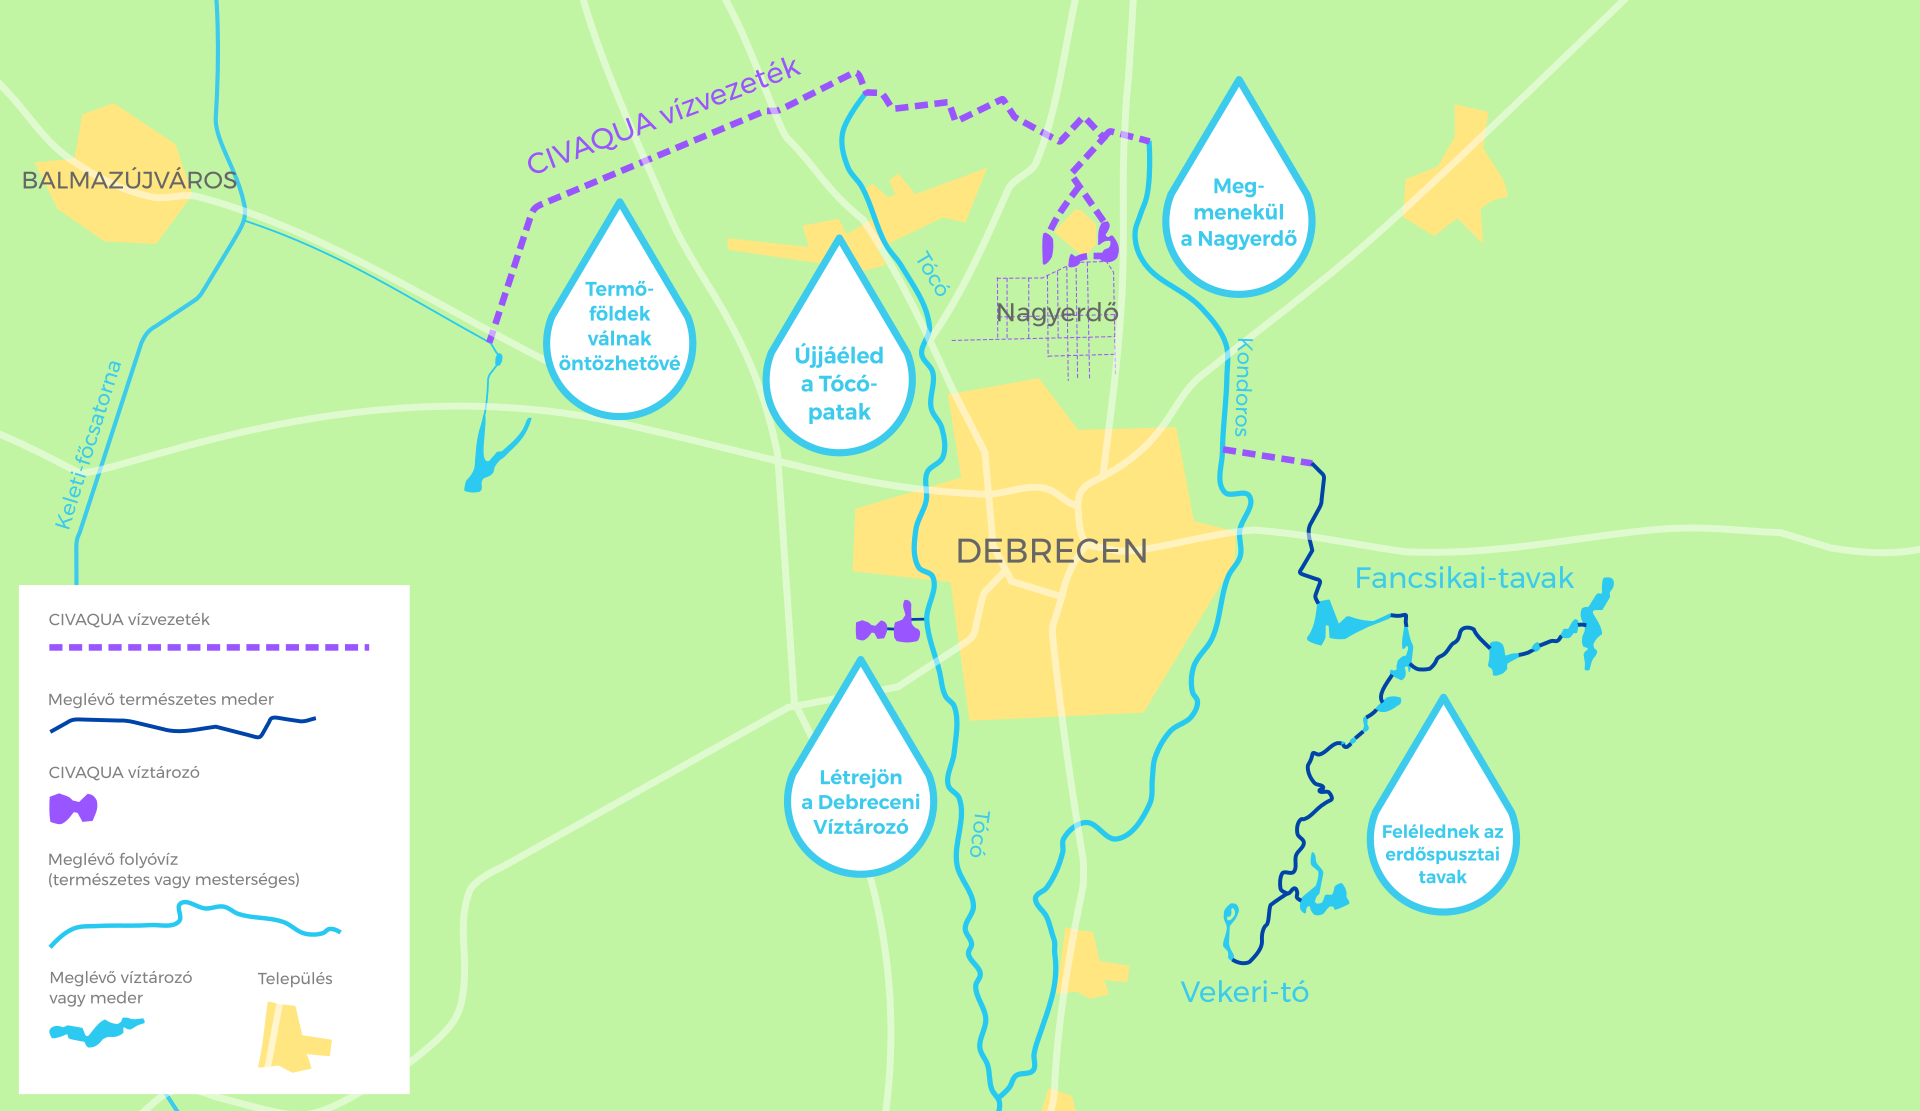 civaqua t%C3%A9rk%C3%A9p 4 - Developments Underway in Debrecen 2021